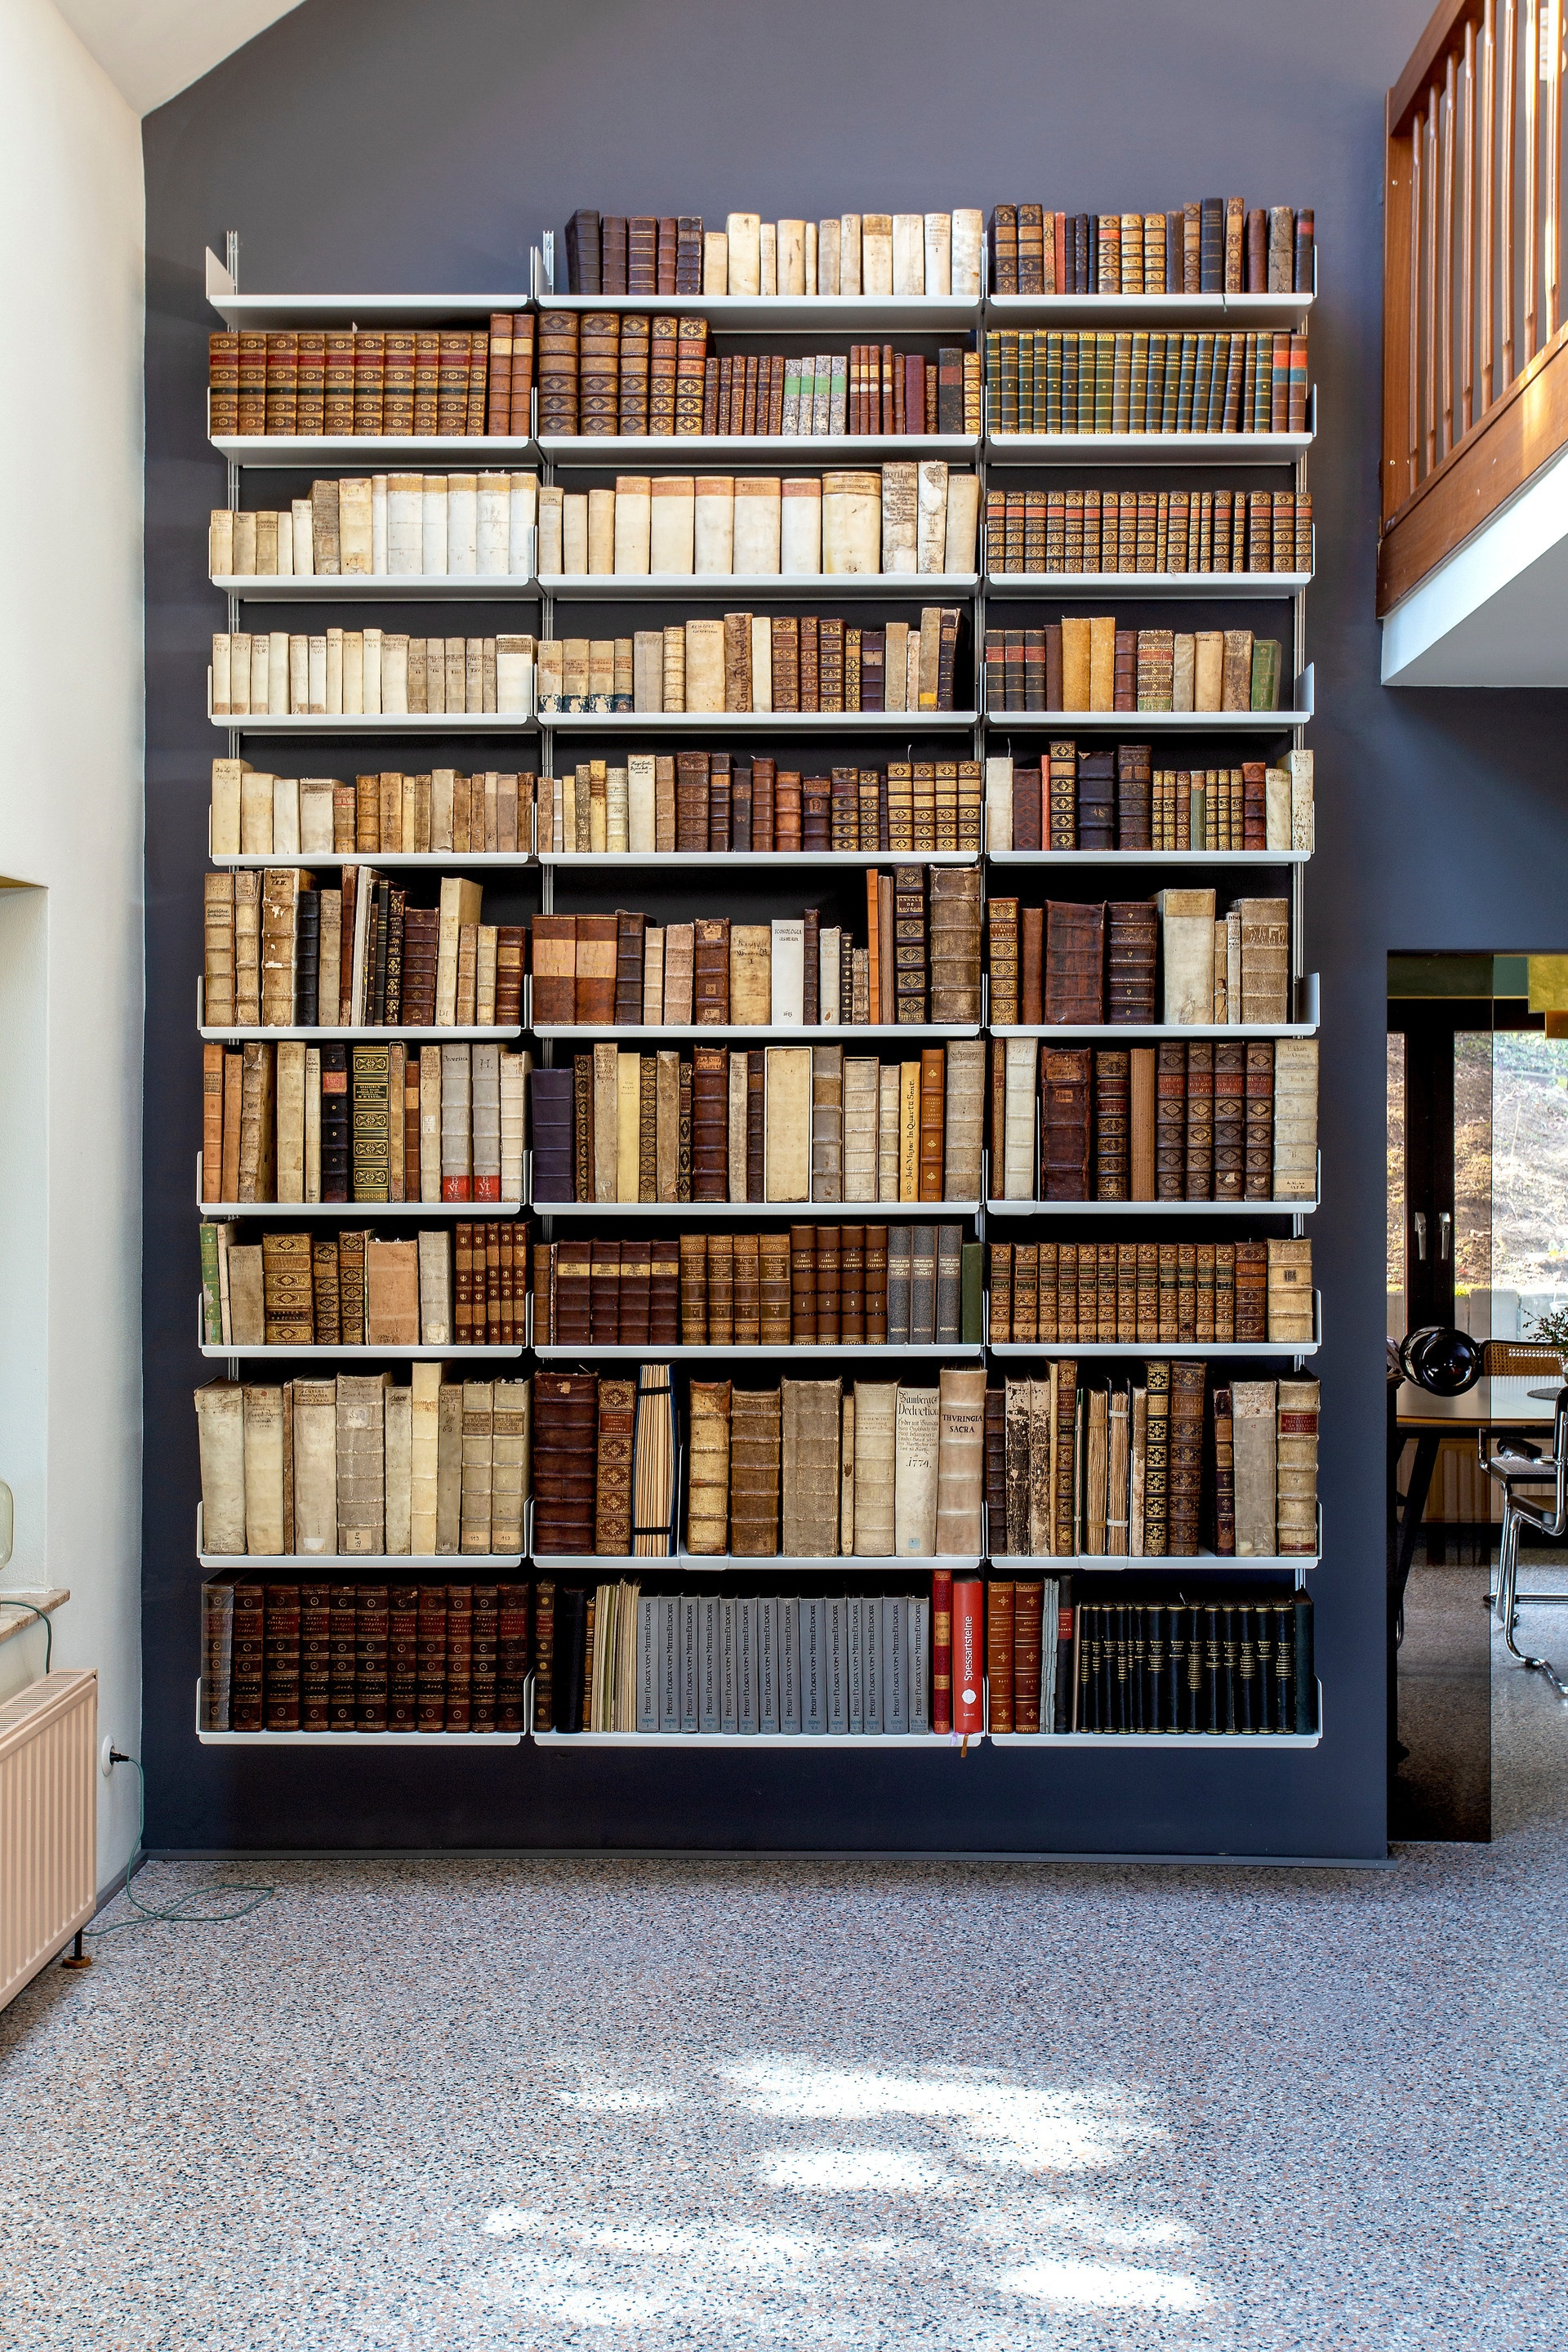 606 Universal Shelving System for books